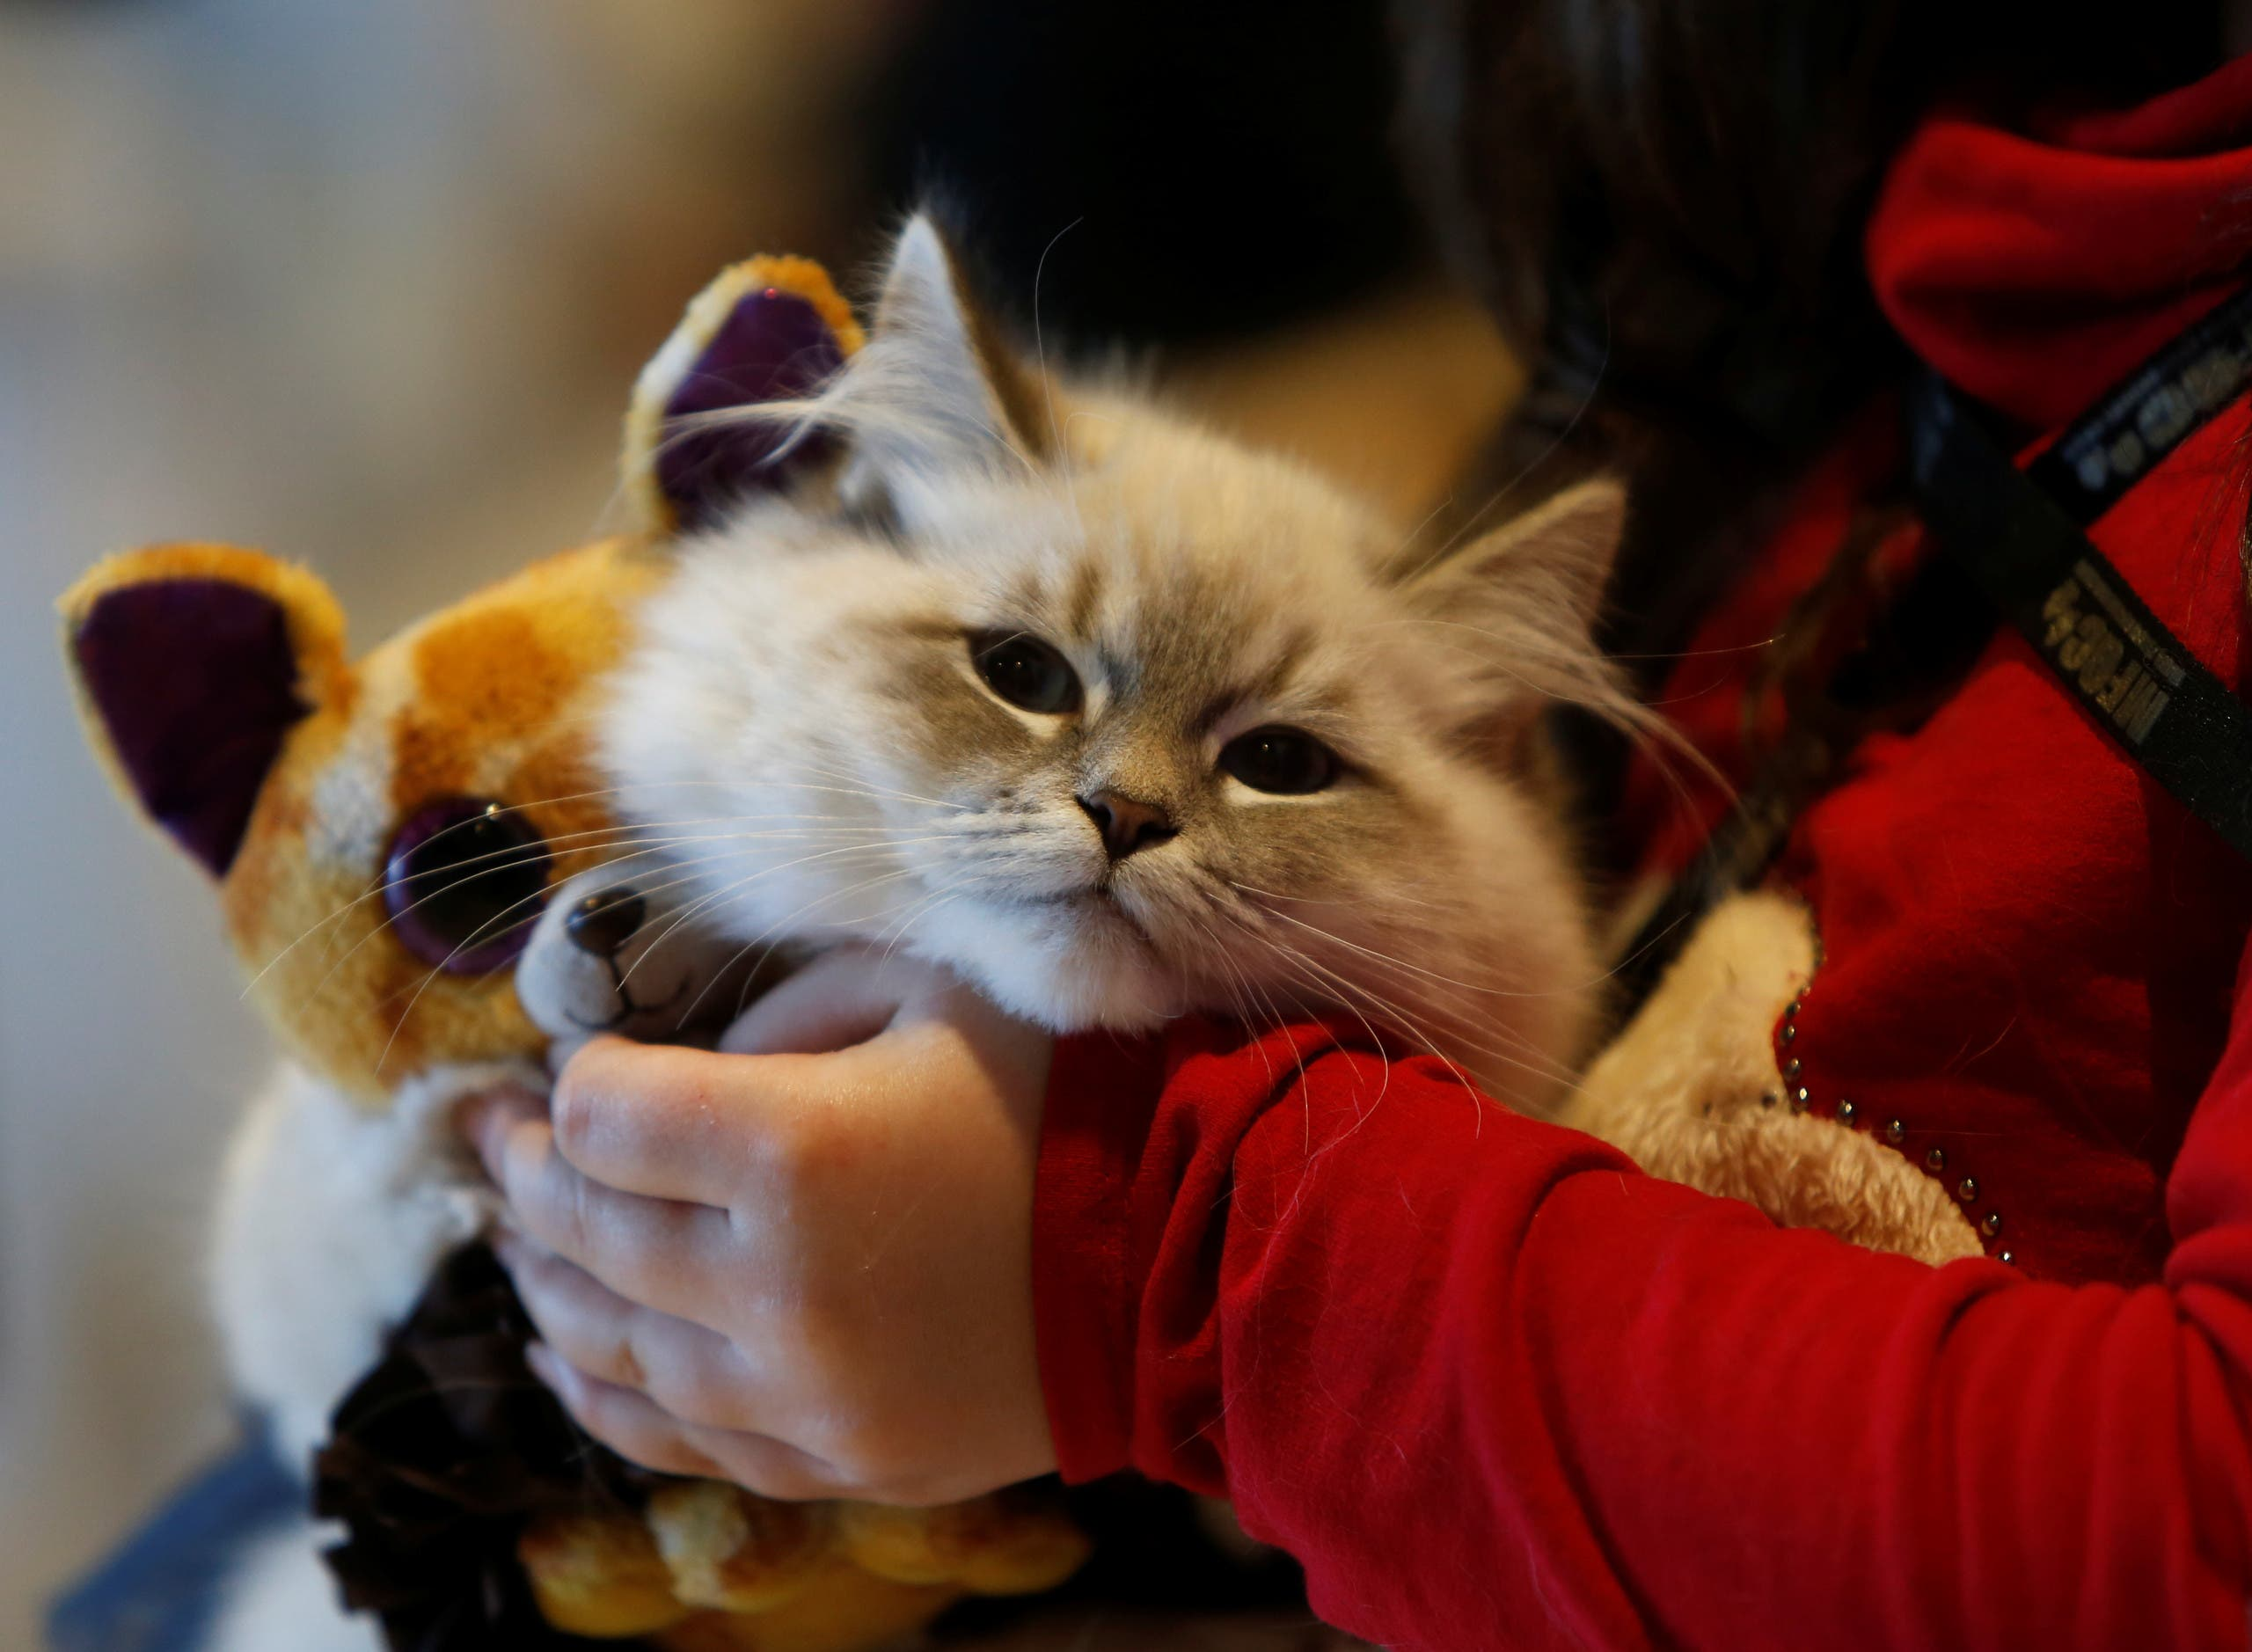 A Siberian cat and a soft toy are carried by its owner during the 73rd International Cat Shows organised by the Malta Feline Guardians Club at SmartCity Malta outside Kalkara, Malta, February 4, 2018. (Reuters)